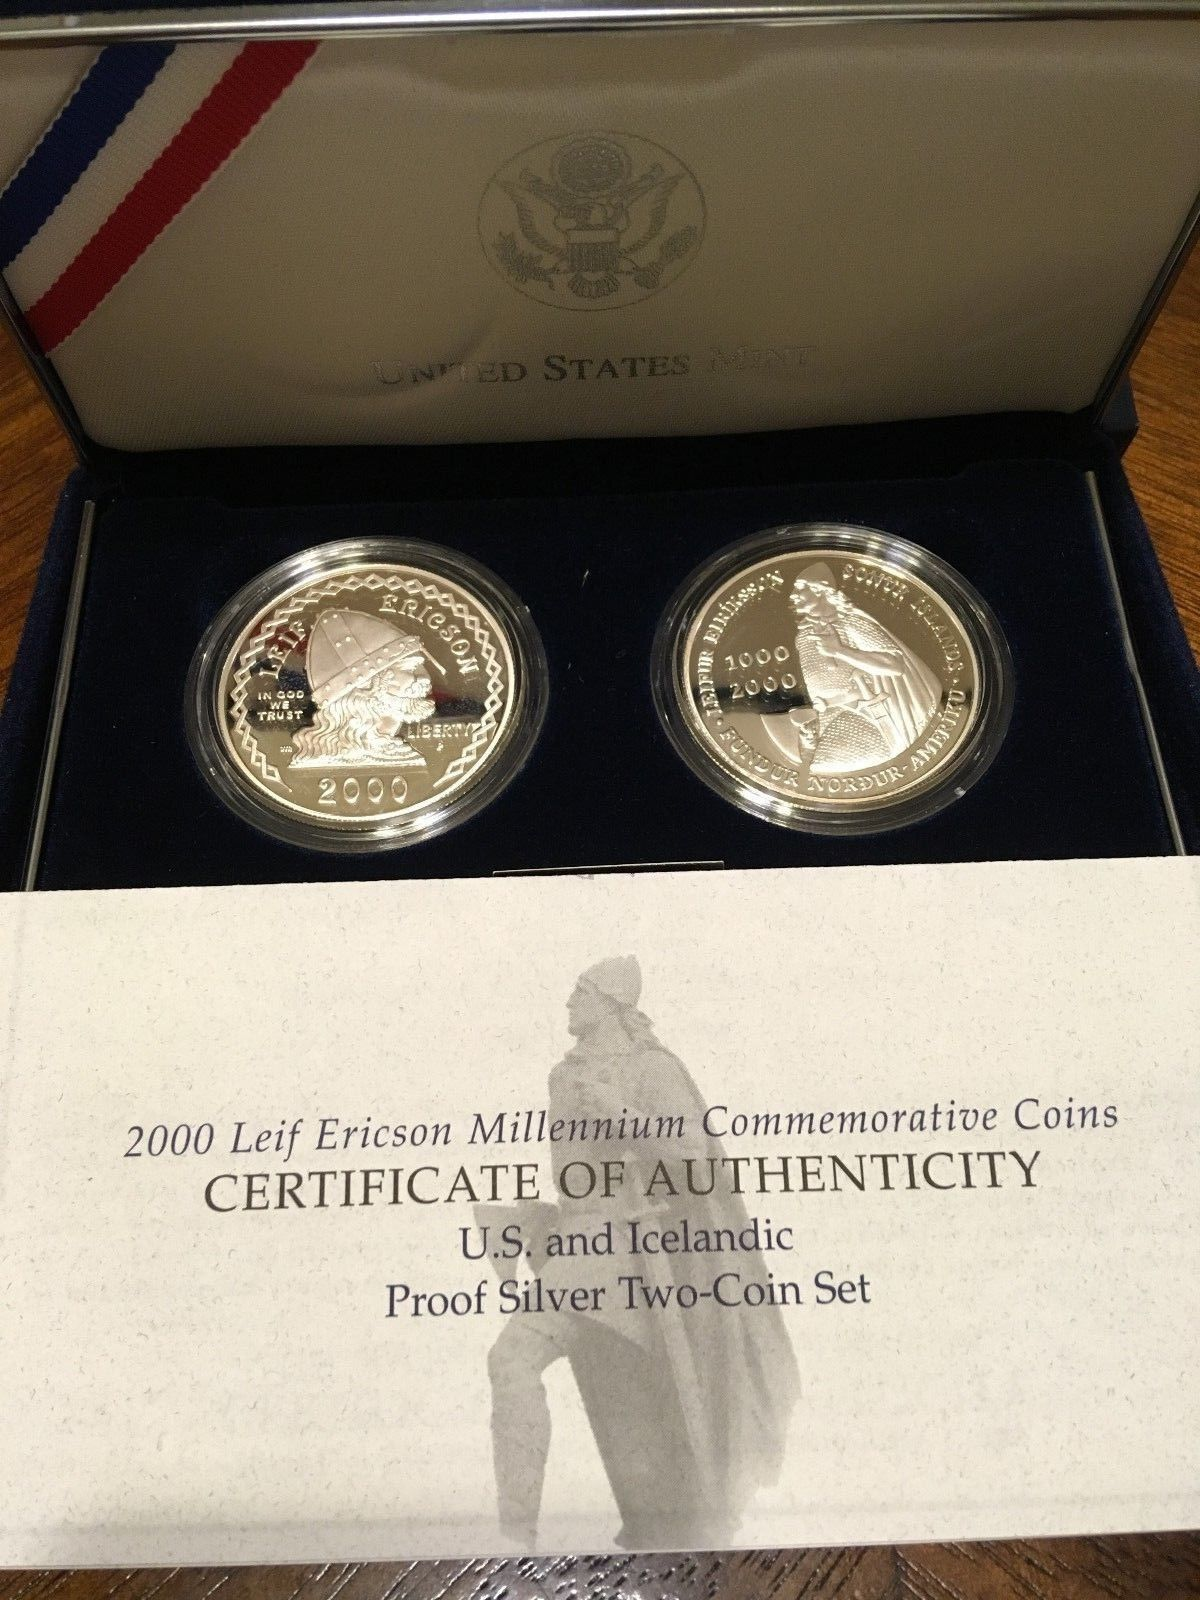 2000 Leif Ericson Millennium Commemorative 2-Coin Silver Proof Set